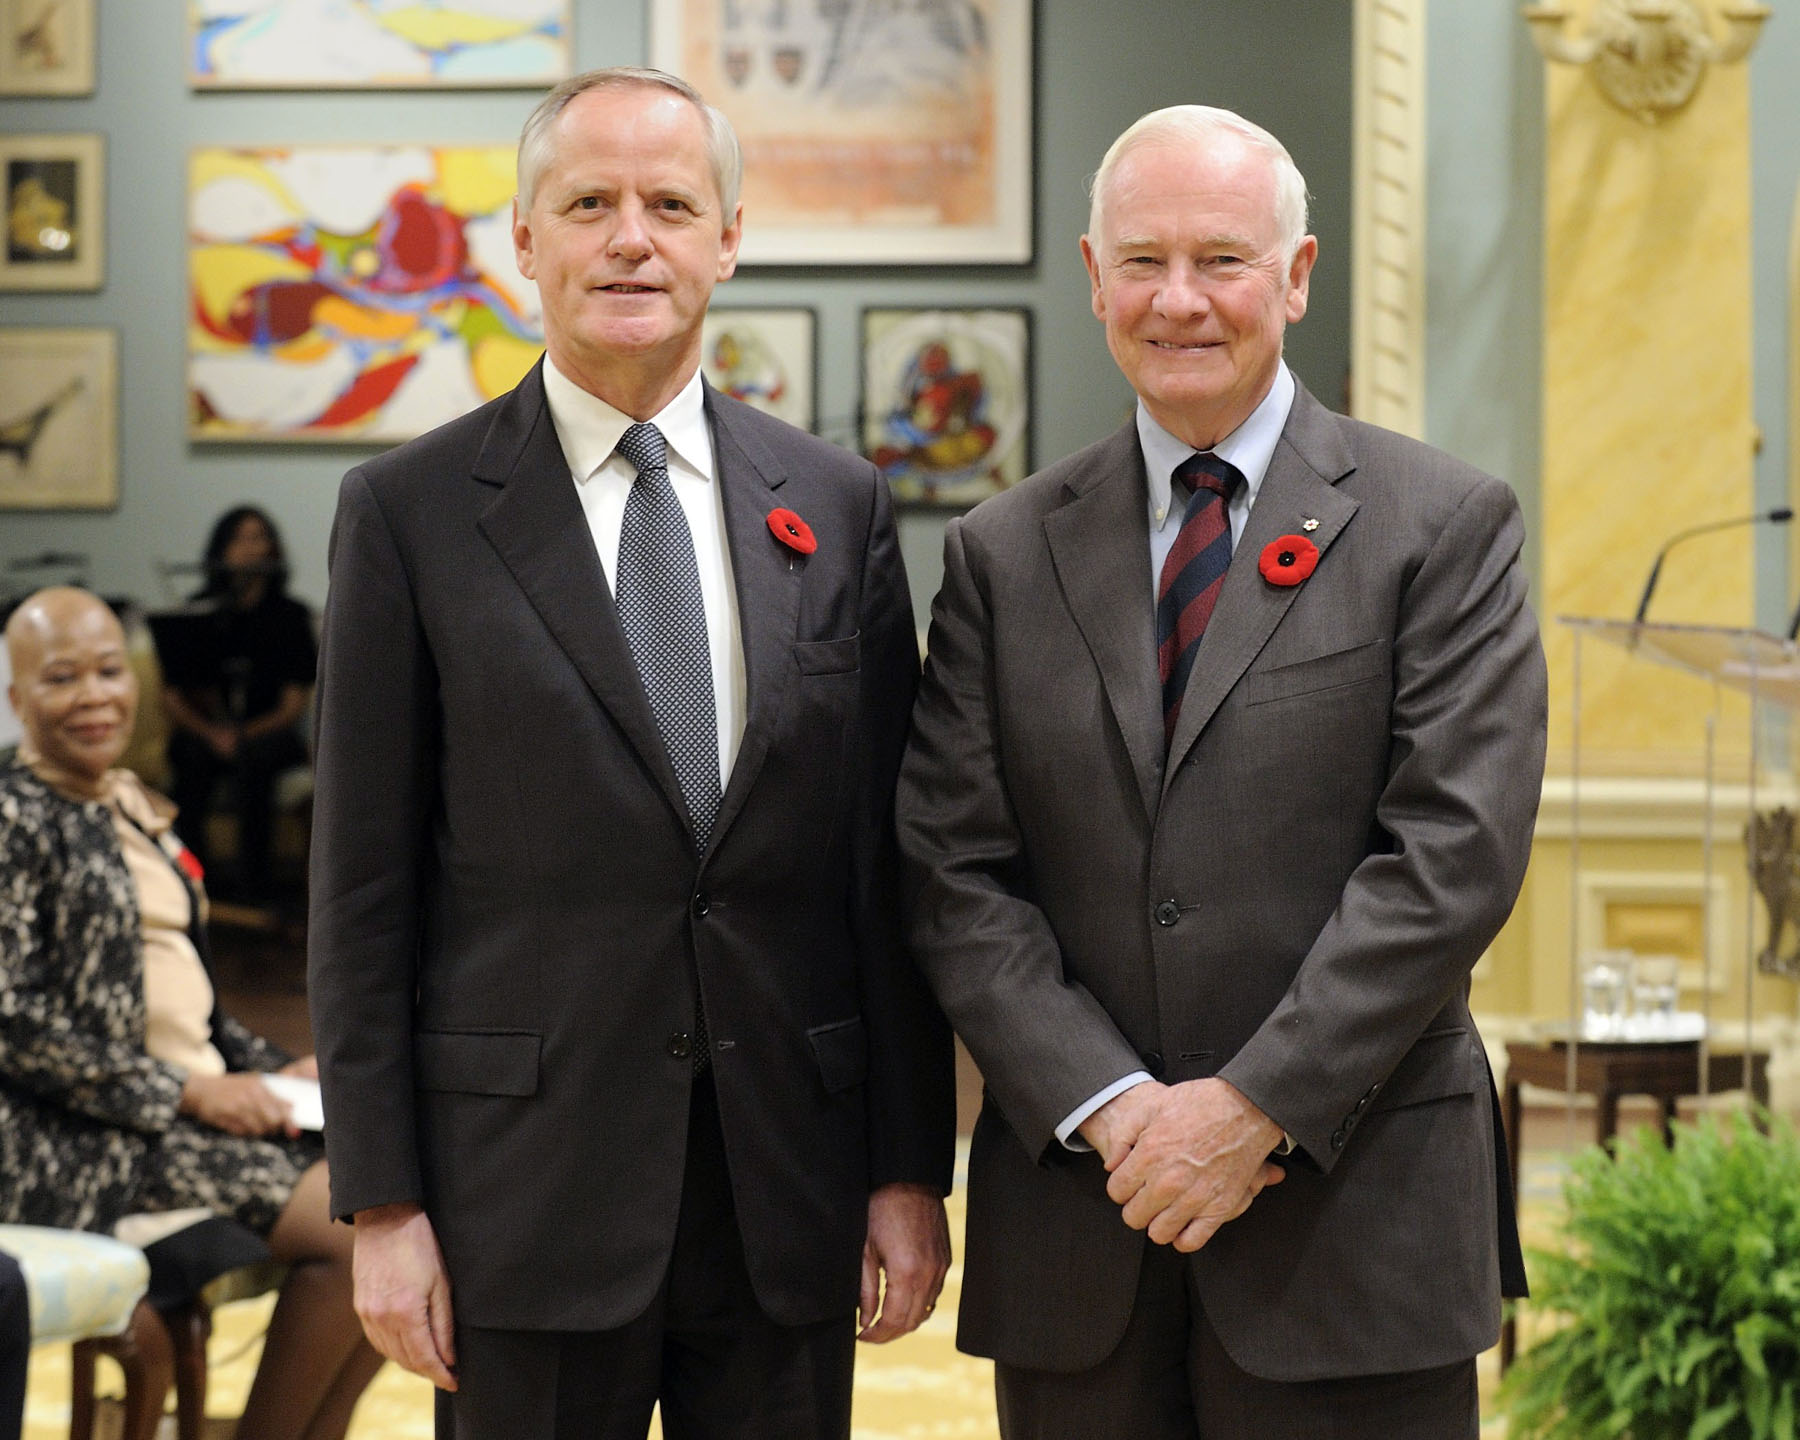 The Governor General received the credentials of His Excellency Arno Riedel, Ambassador of the Republic of Austria.